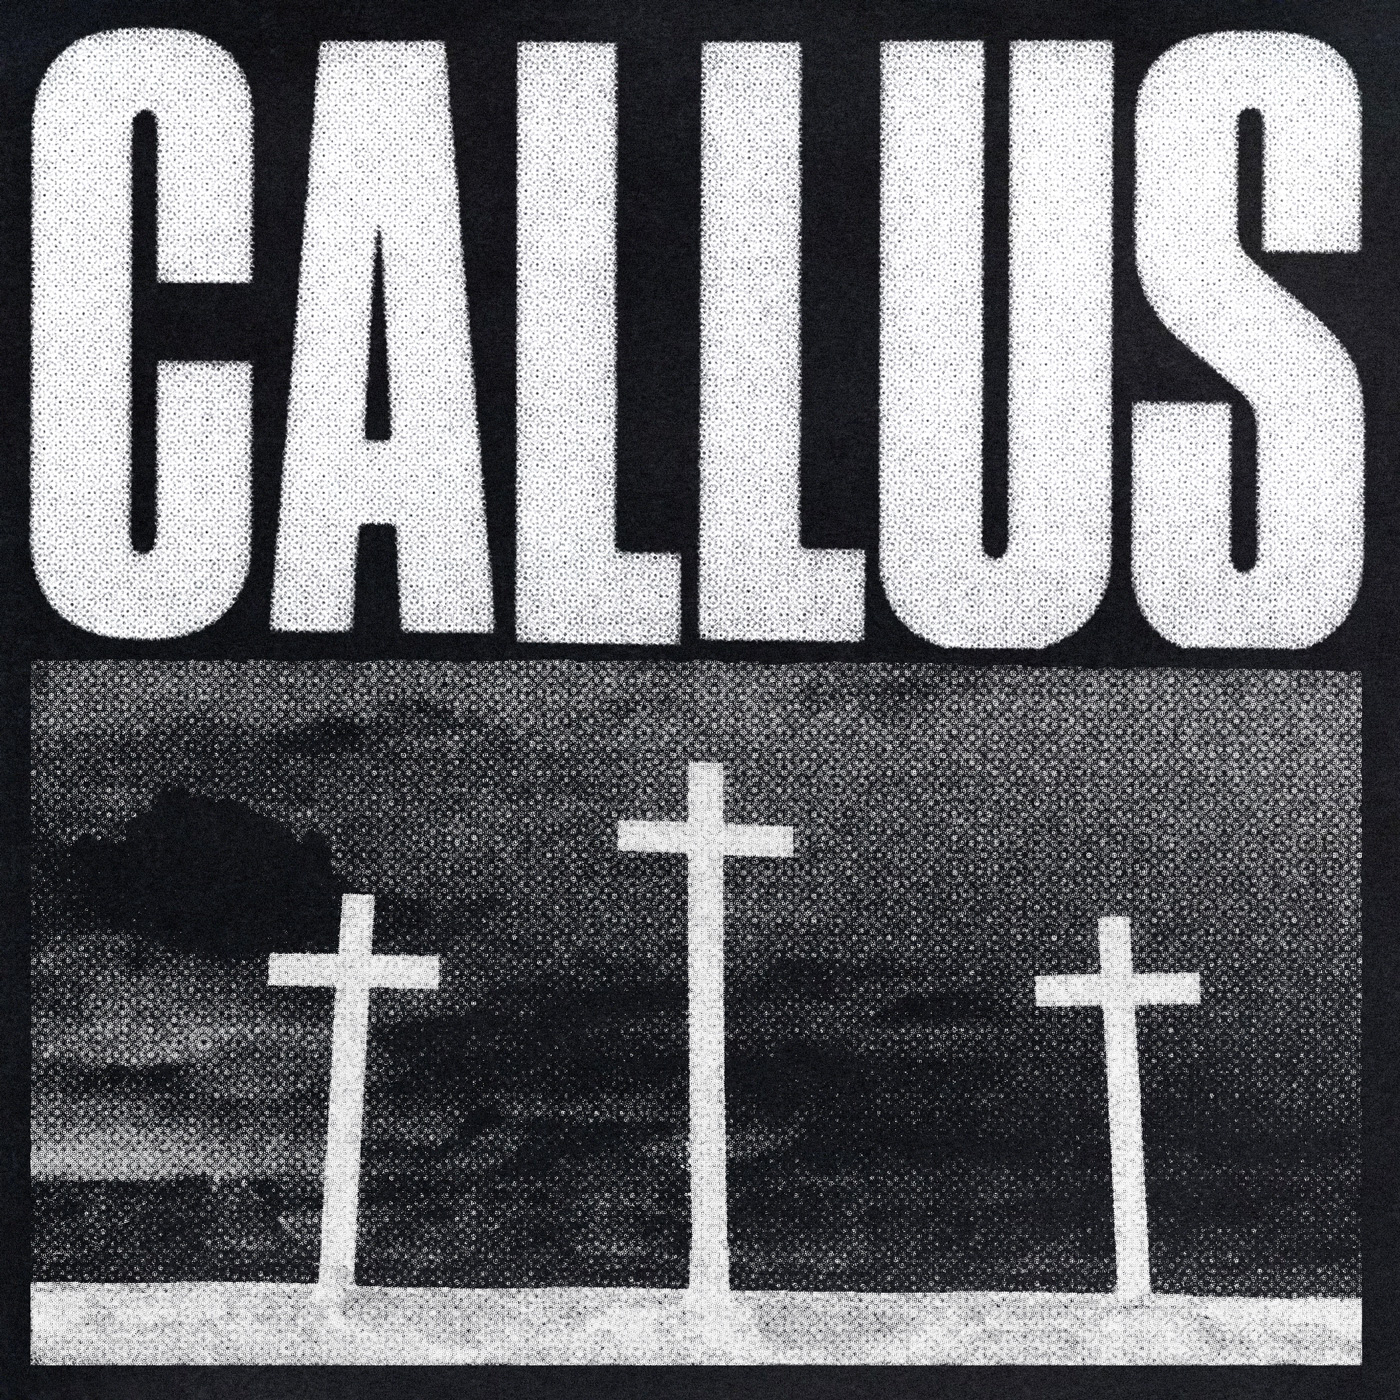 'CALLUS' out 19 August, Listen to 'Maniac Depressant'